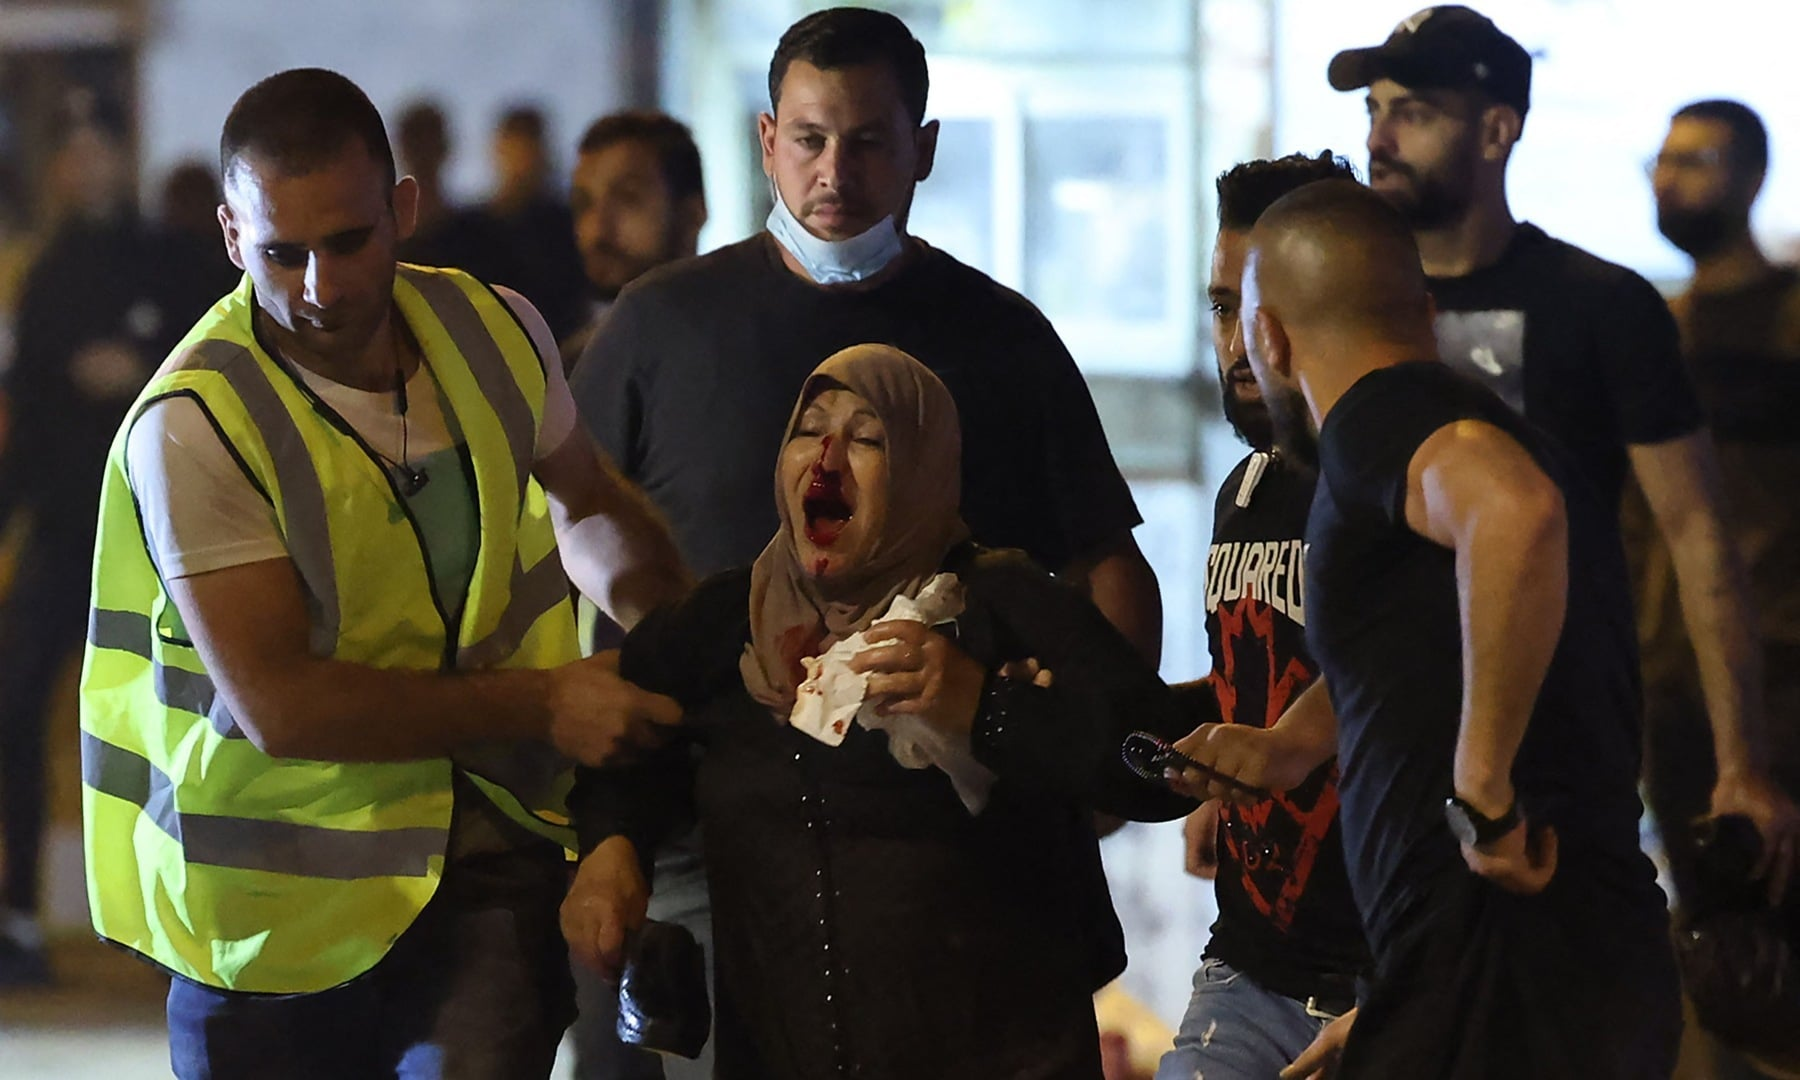 Palestinians assist a wounded woman amid clashes with Israeli security forces in Jerusalem's Old City on May 8. — AFP